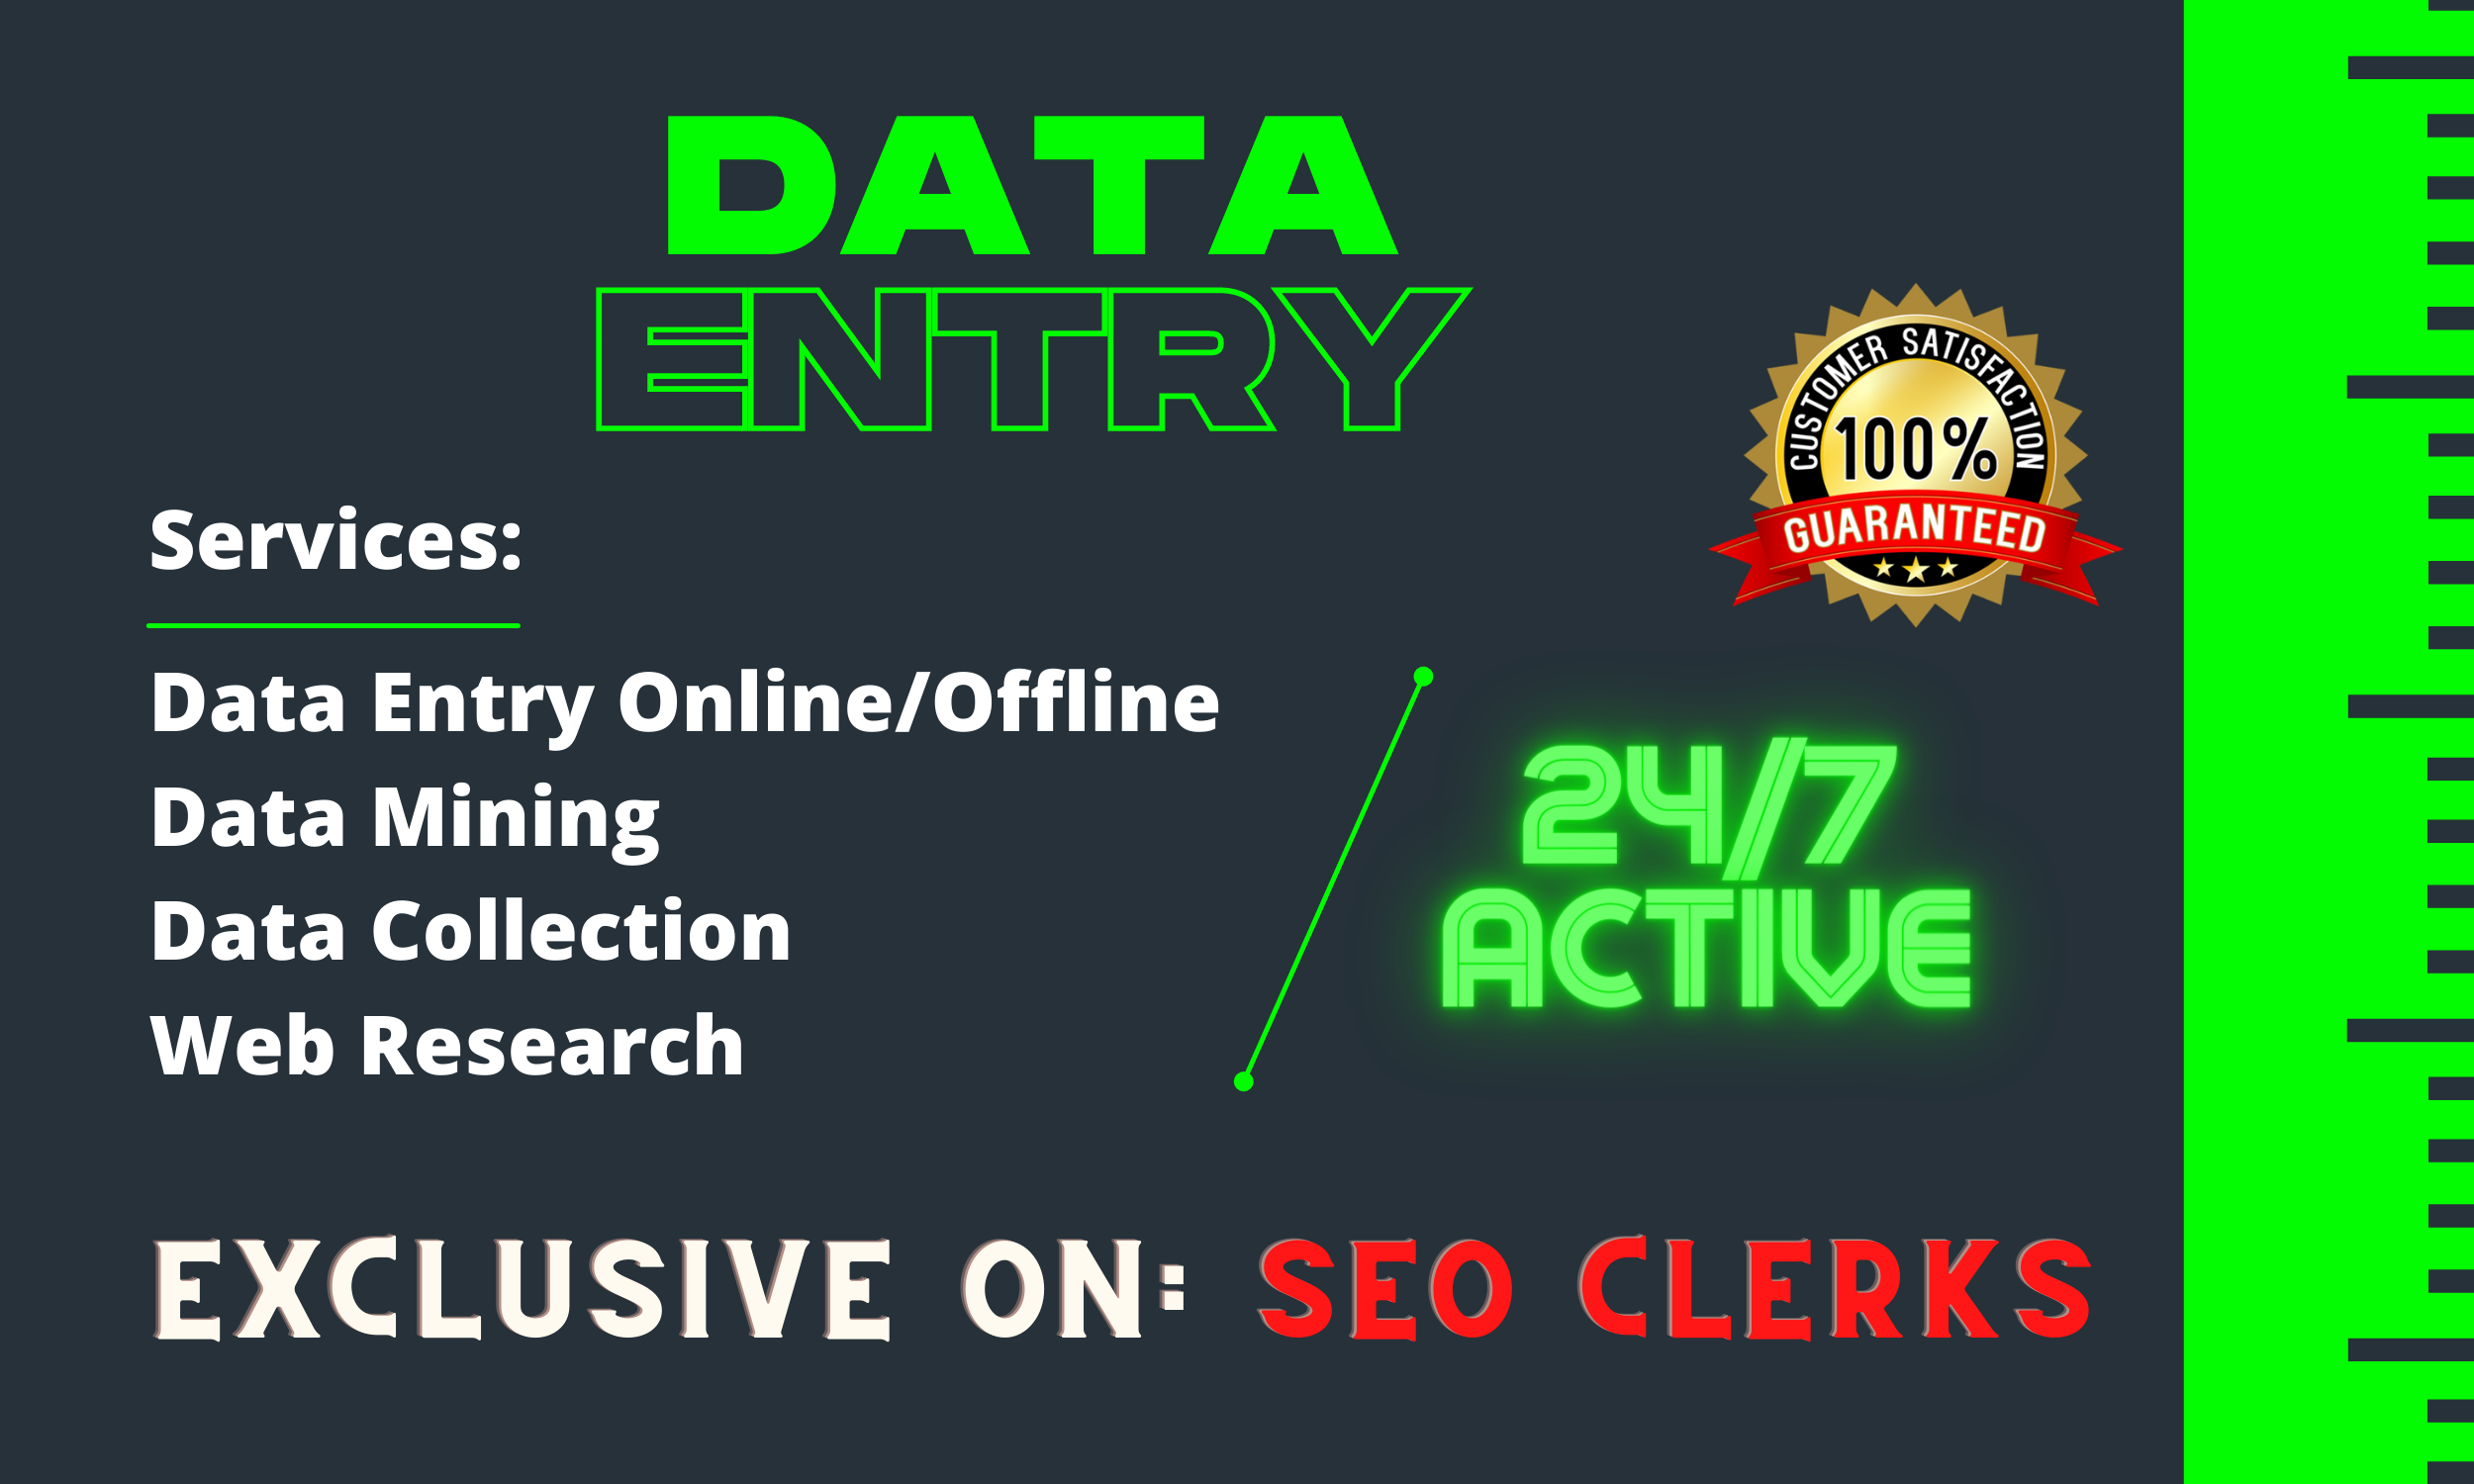 I will perfect data entry,  data mining,  data collection and web research